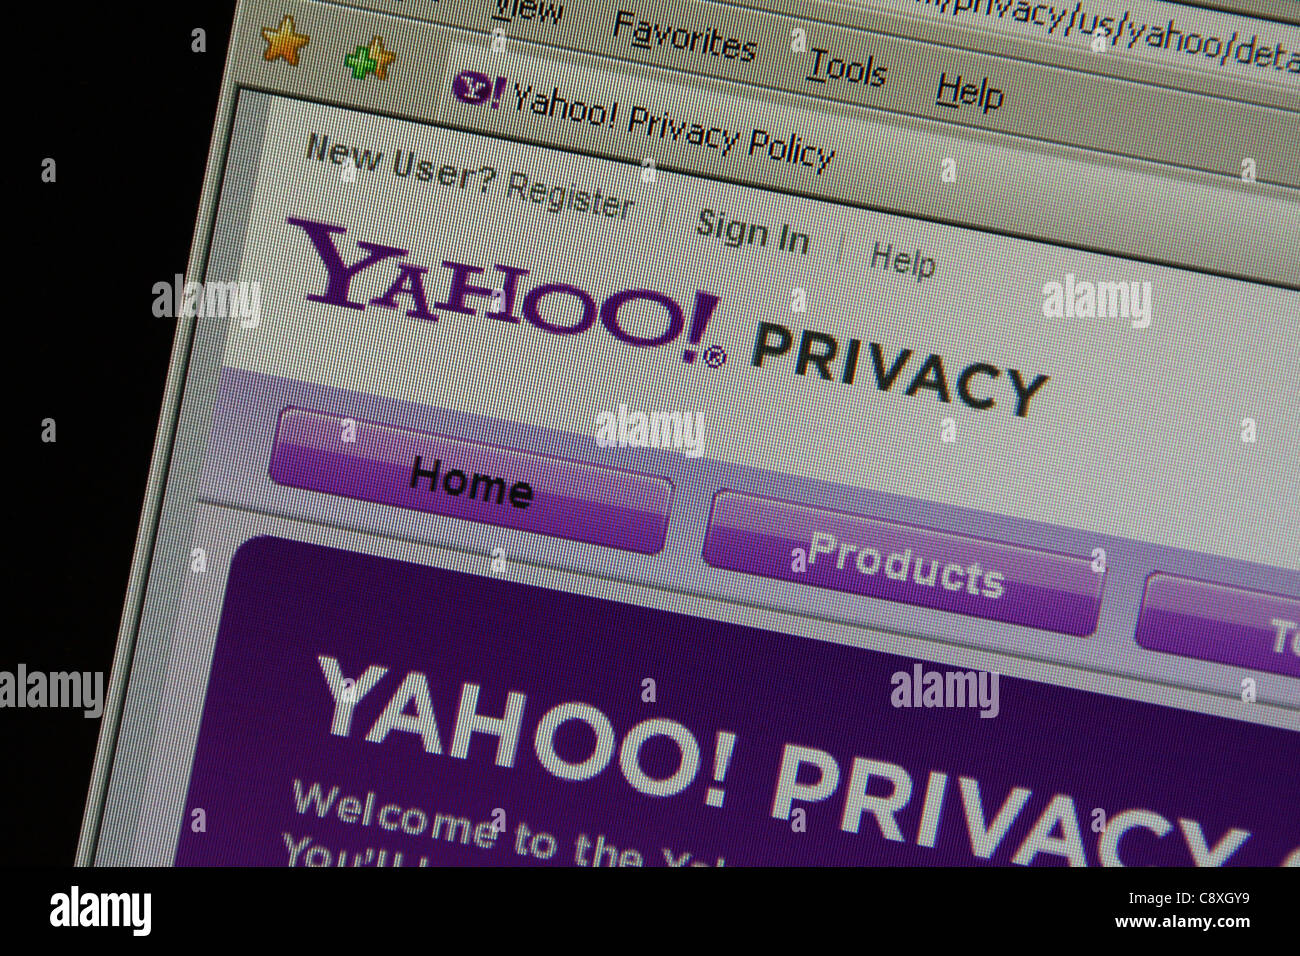 yahoo online privacy - Stock Image